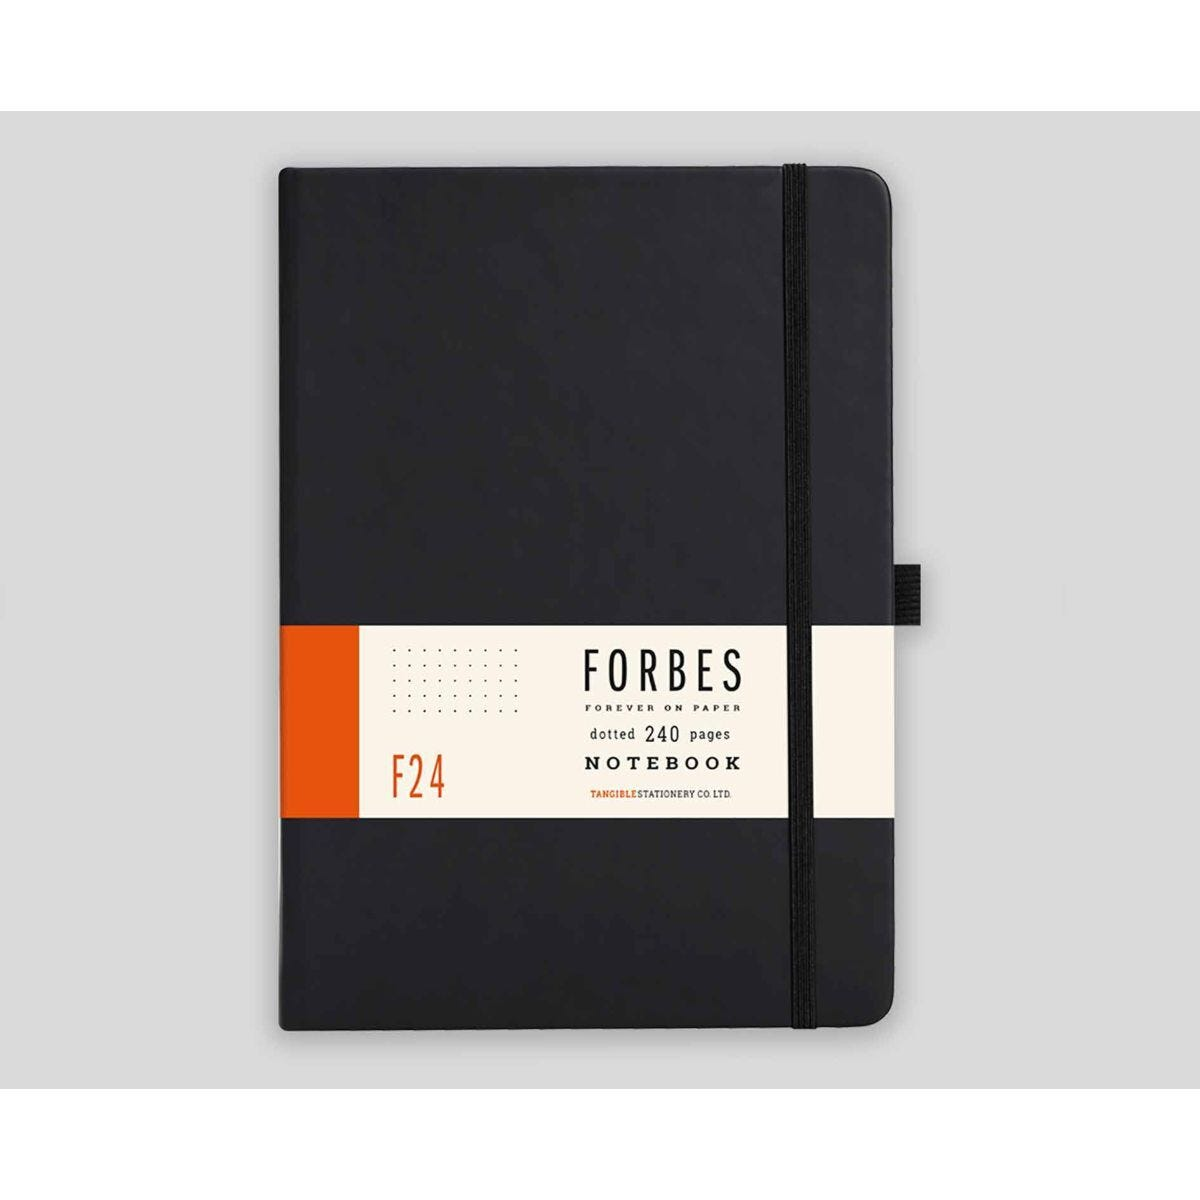 FORBES Classic Hard Cover Notebook Dotted A5 240 Pages Black